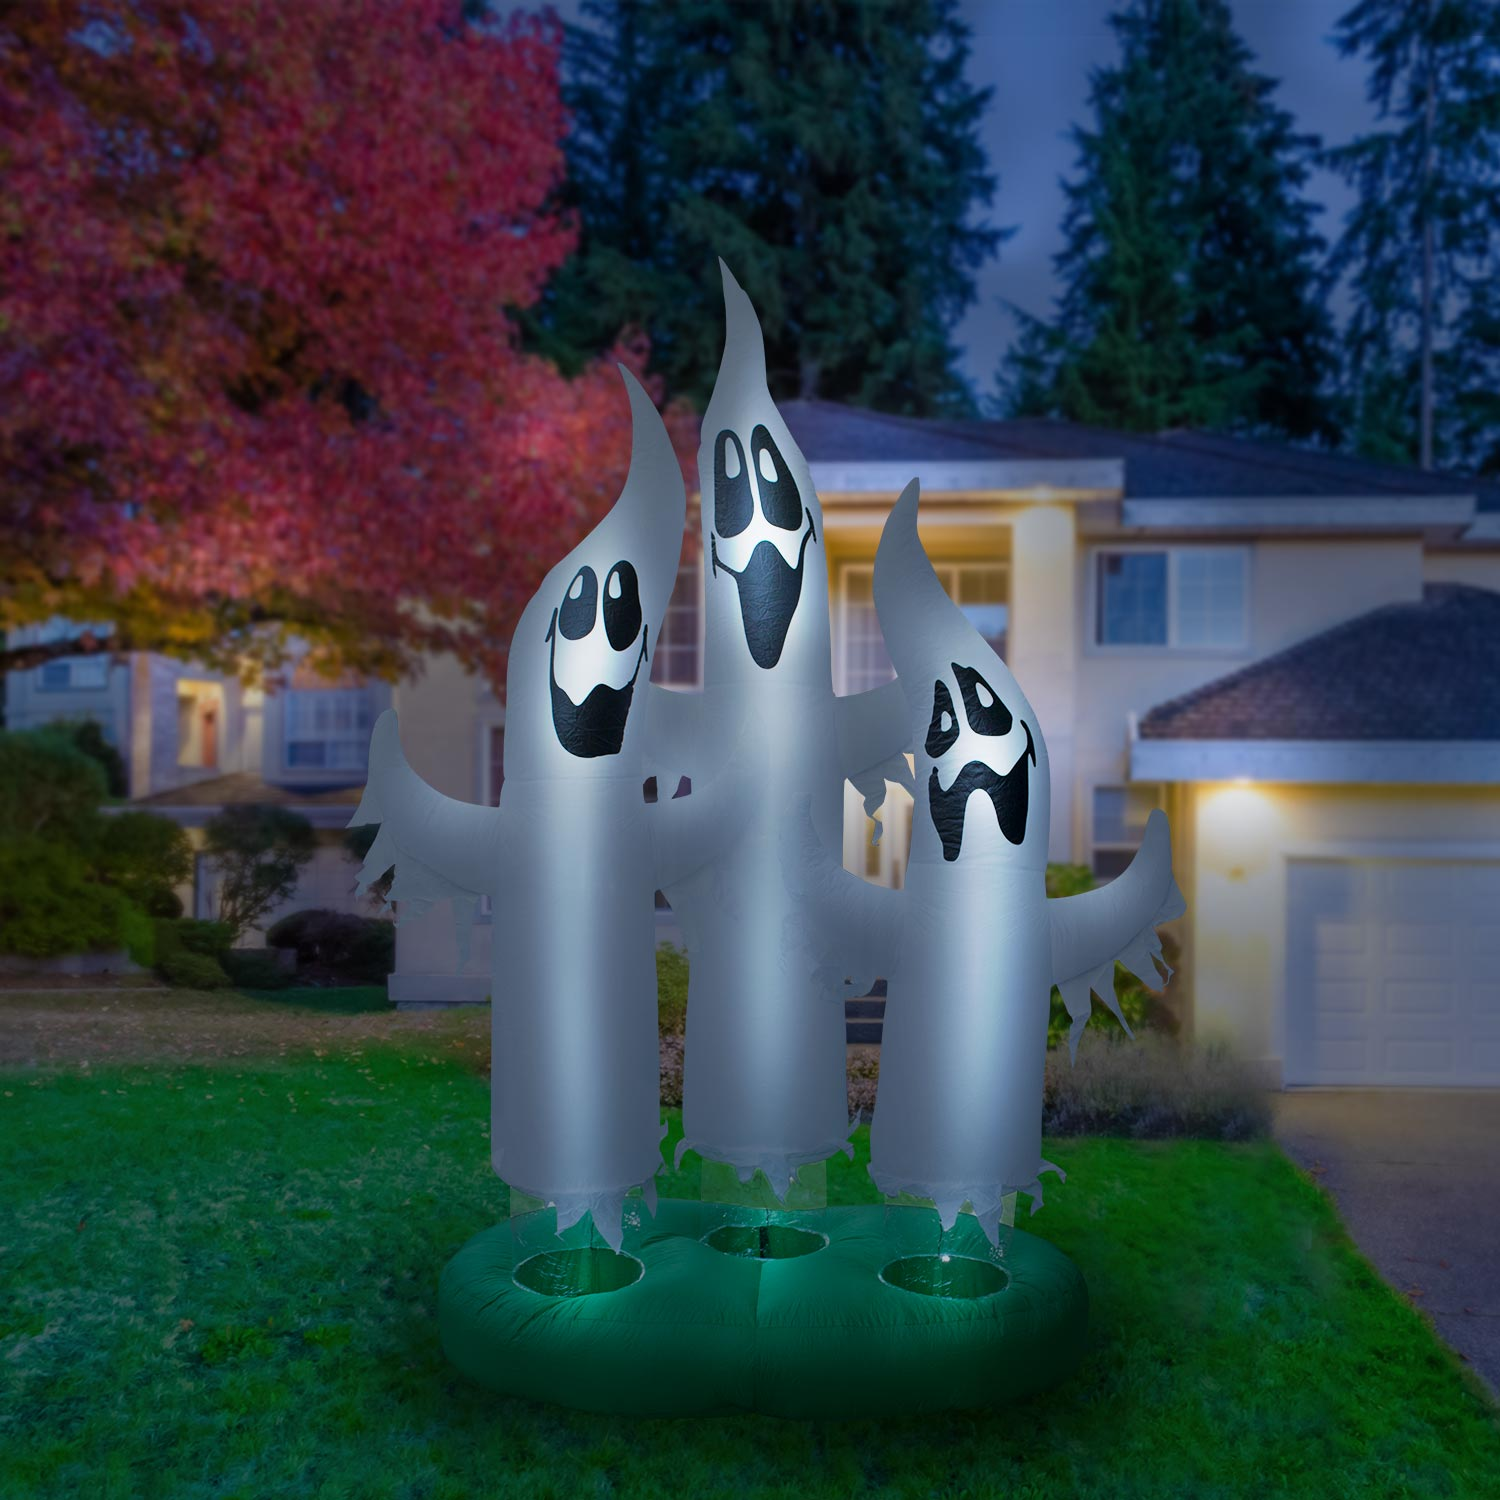 Holidayana Giant 10 Ft Airblown Inflatable Ghost Family – Inflatable Halloween Decoration with Super Bright Internal Lights, Built-in Fan & Anchor Ropes